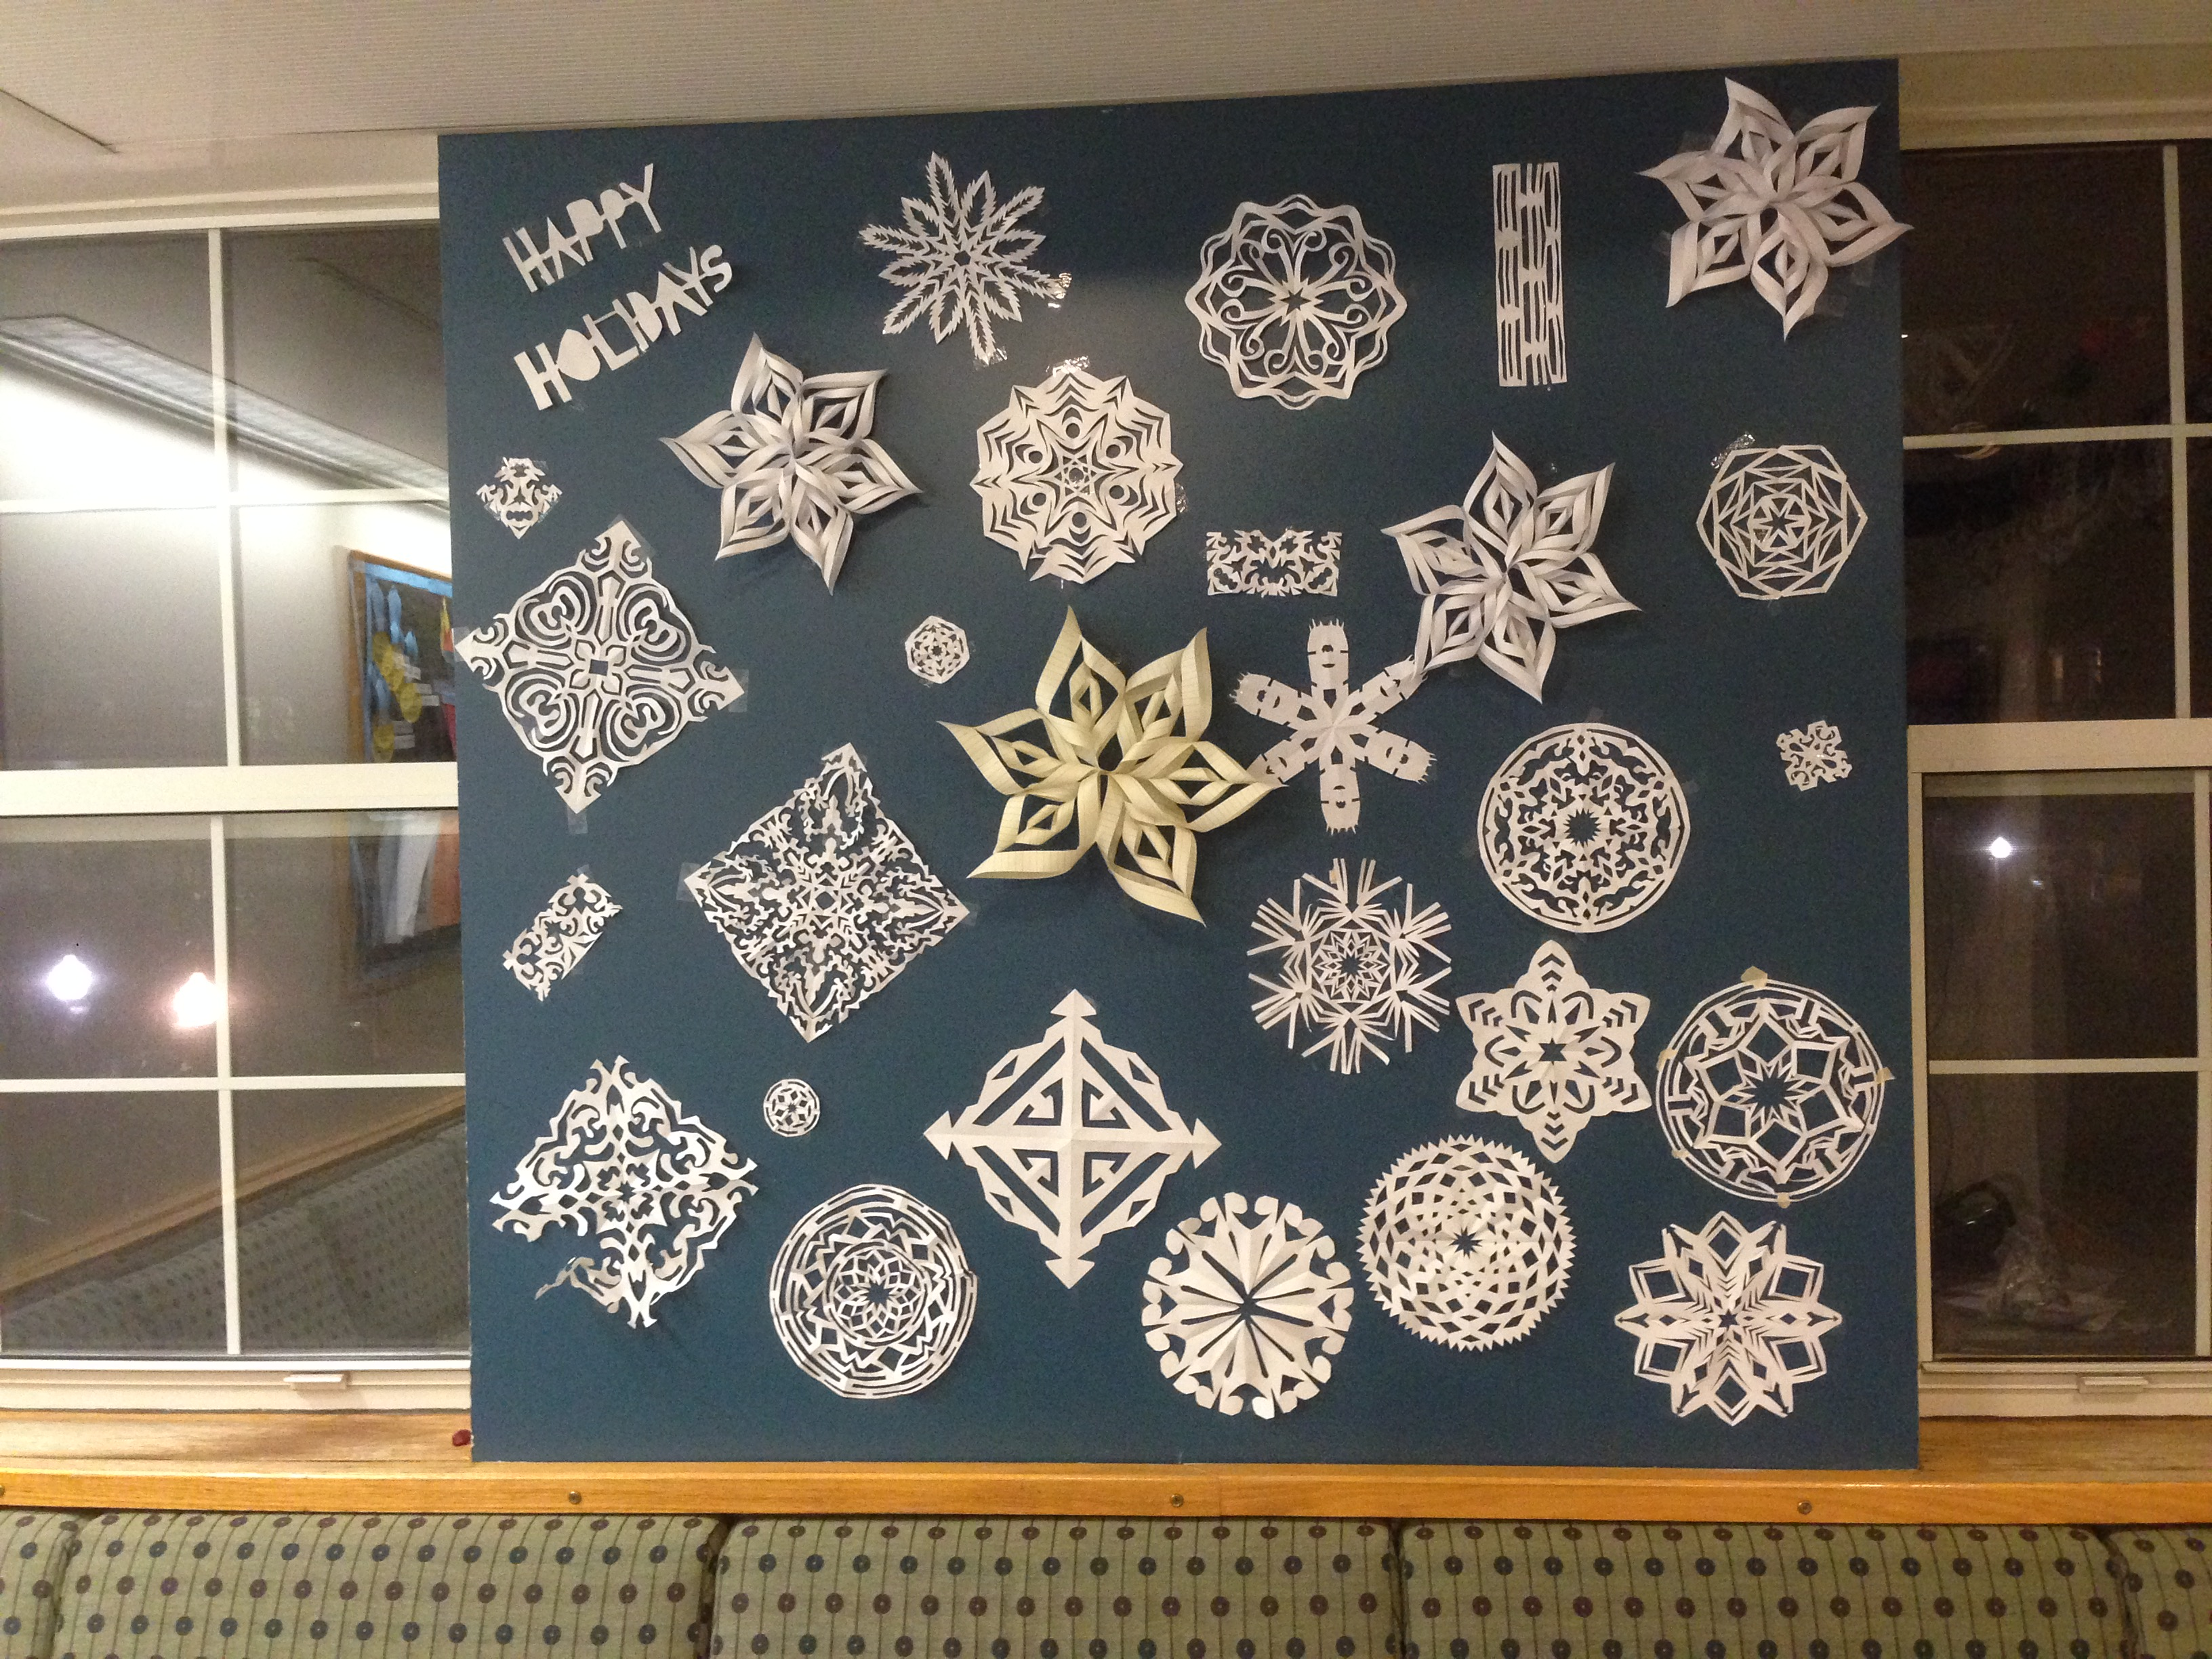 We made snowflakes for my D'Lions hall program!